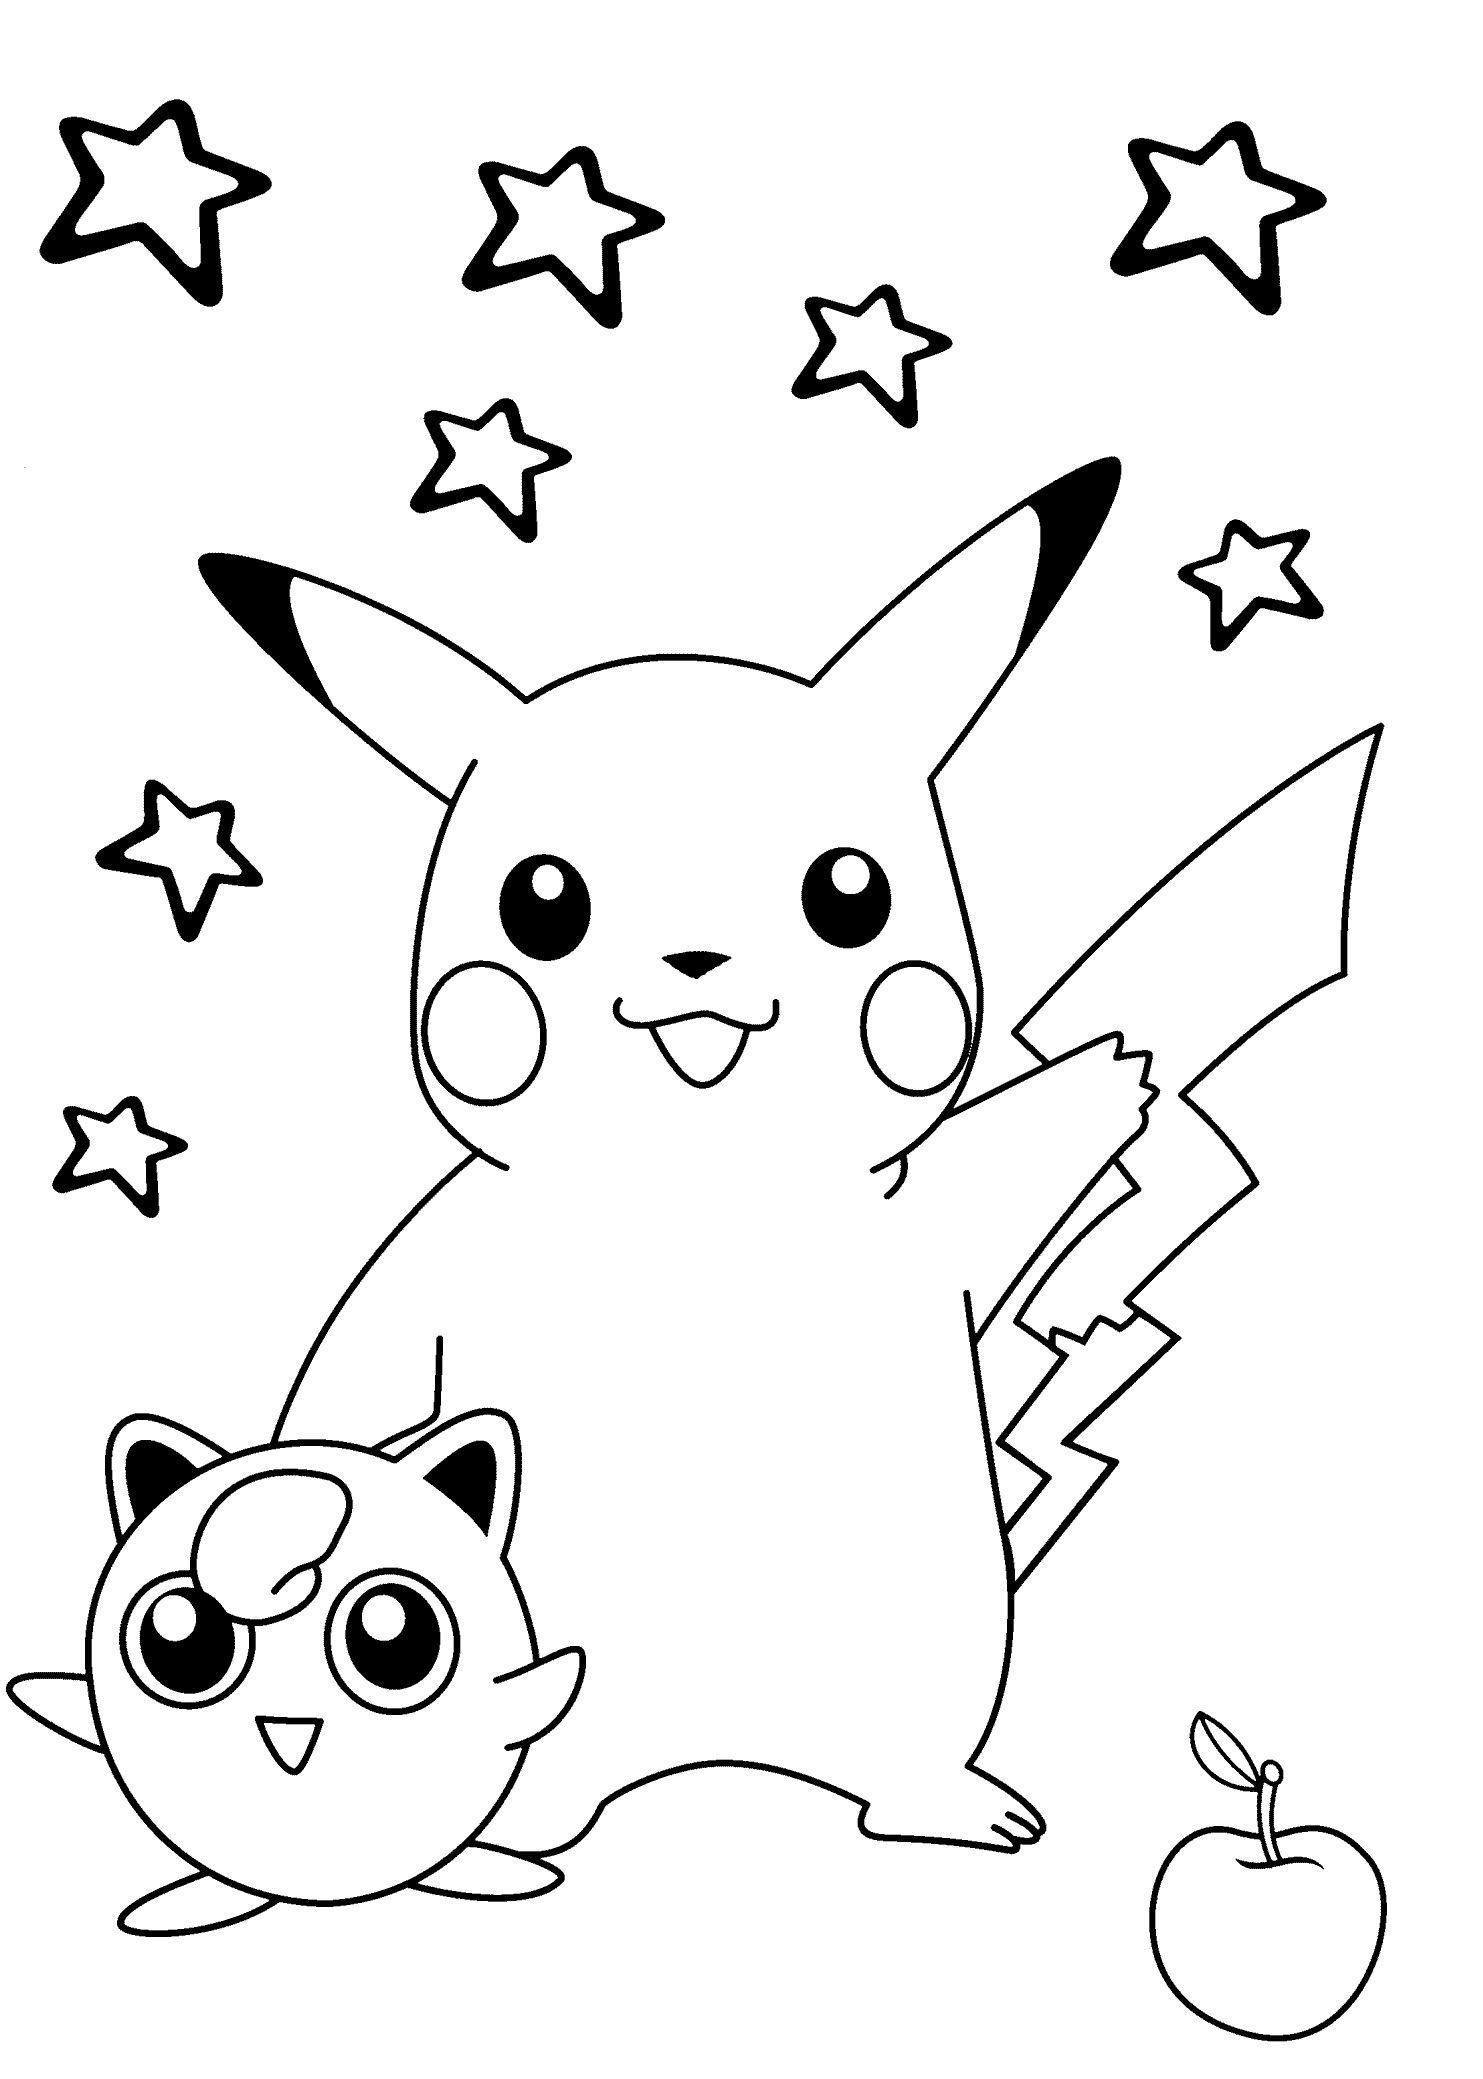 Pokemon Coloring Book Pdf Coloring Pages Allow Kids To Accompany Their Favorite Characters On Pikachu Coloring Page Pokemon Coloring Pokemon Coloring Sheets